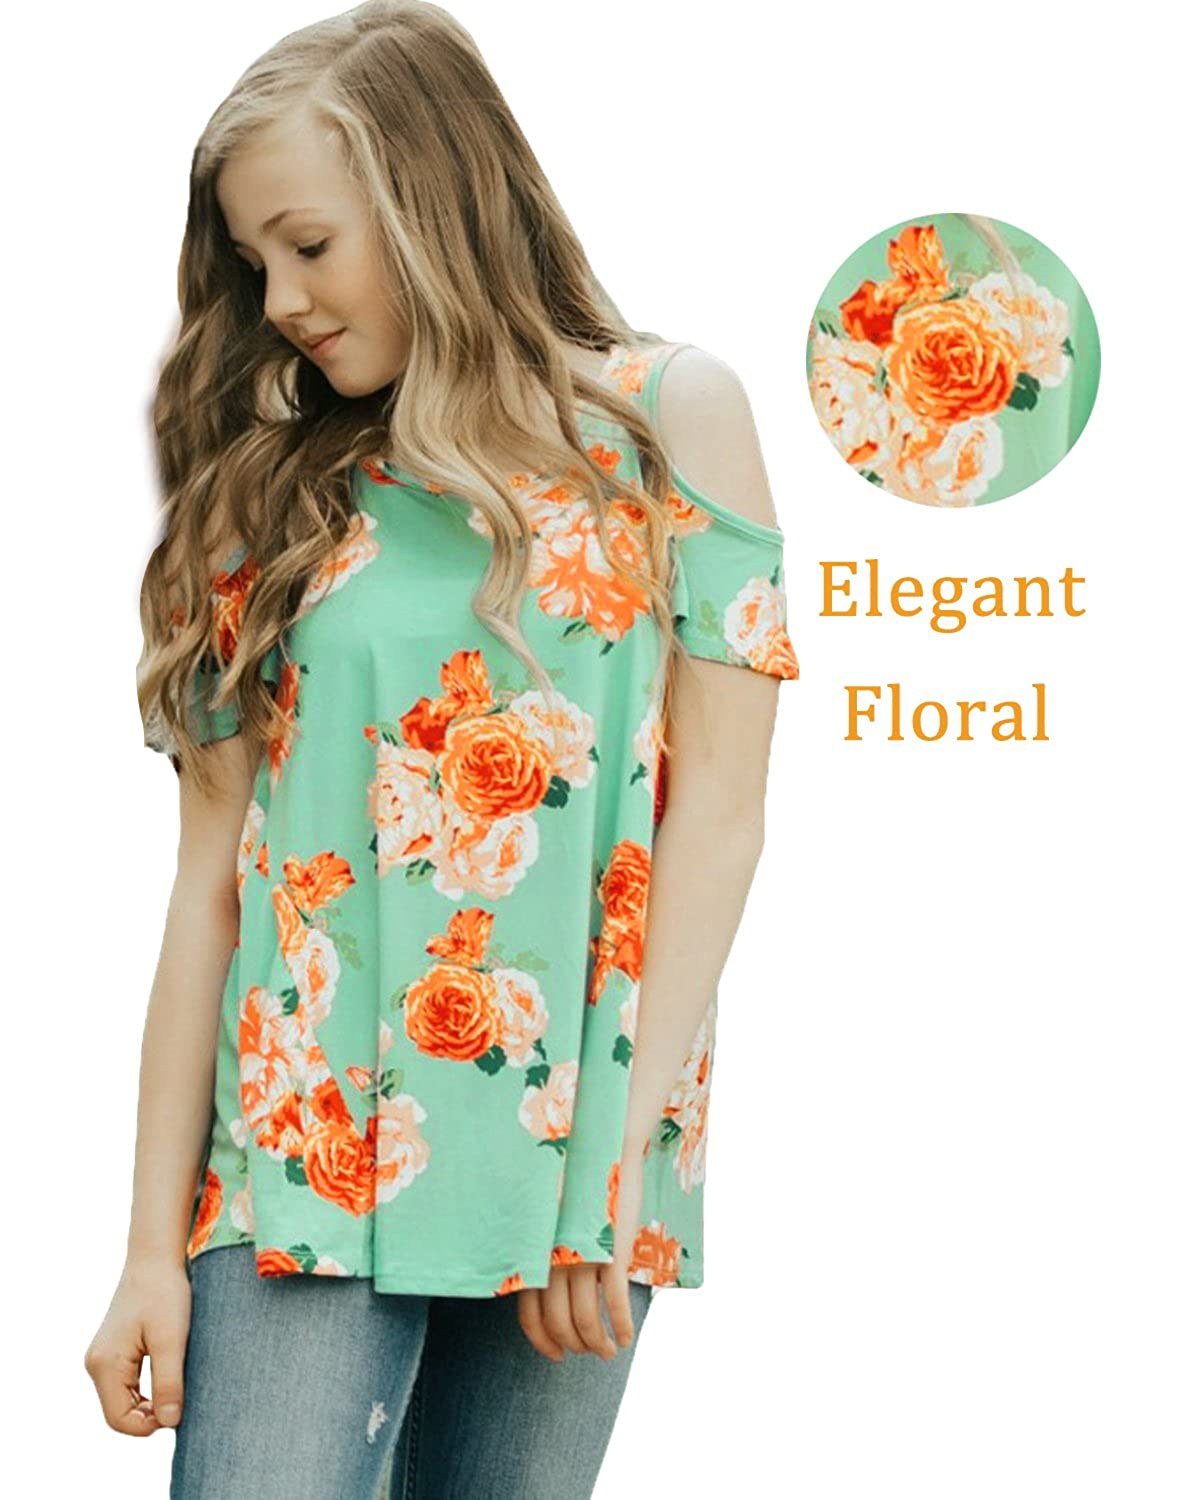 CHARMCZ Girls Tees Short Sleeve T Shirt Floral Print Spring Cut Out Shoulder Casual Loose Tunic Tops 4-13Y